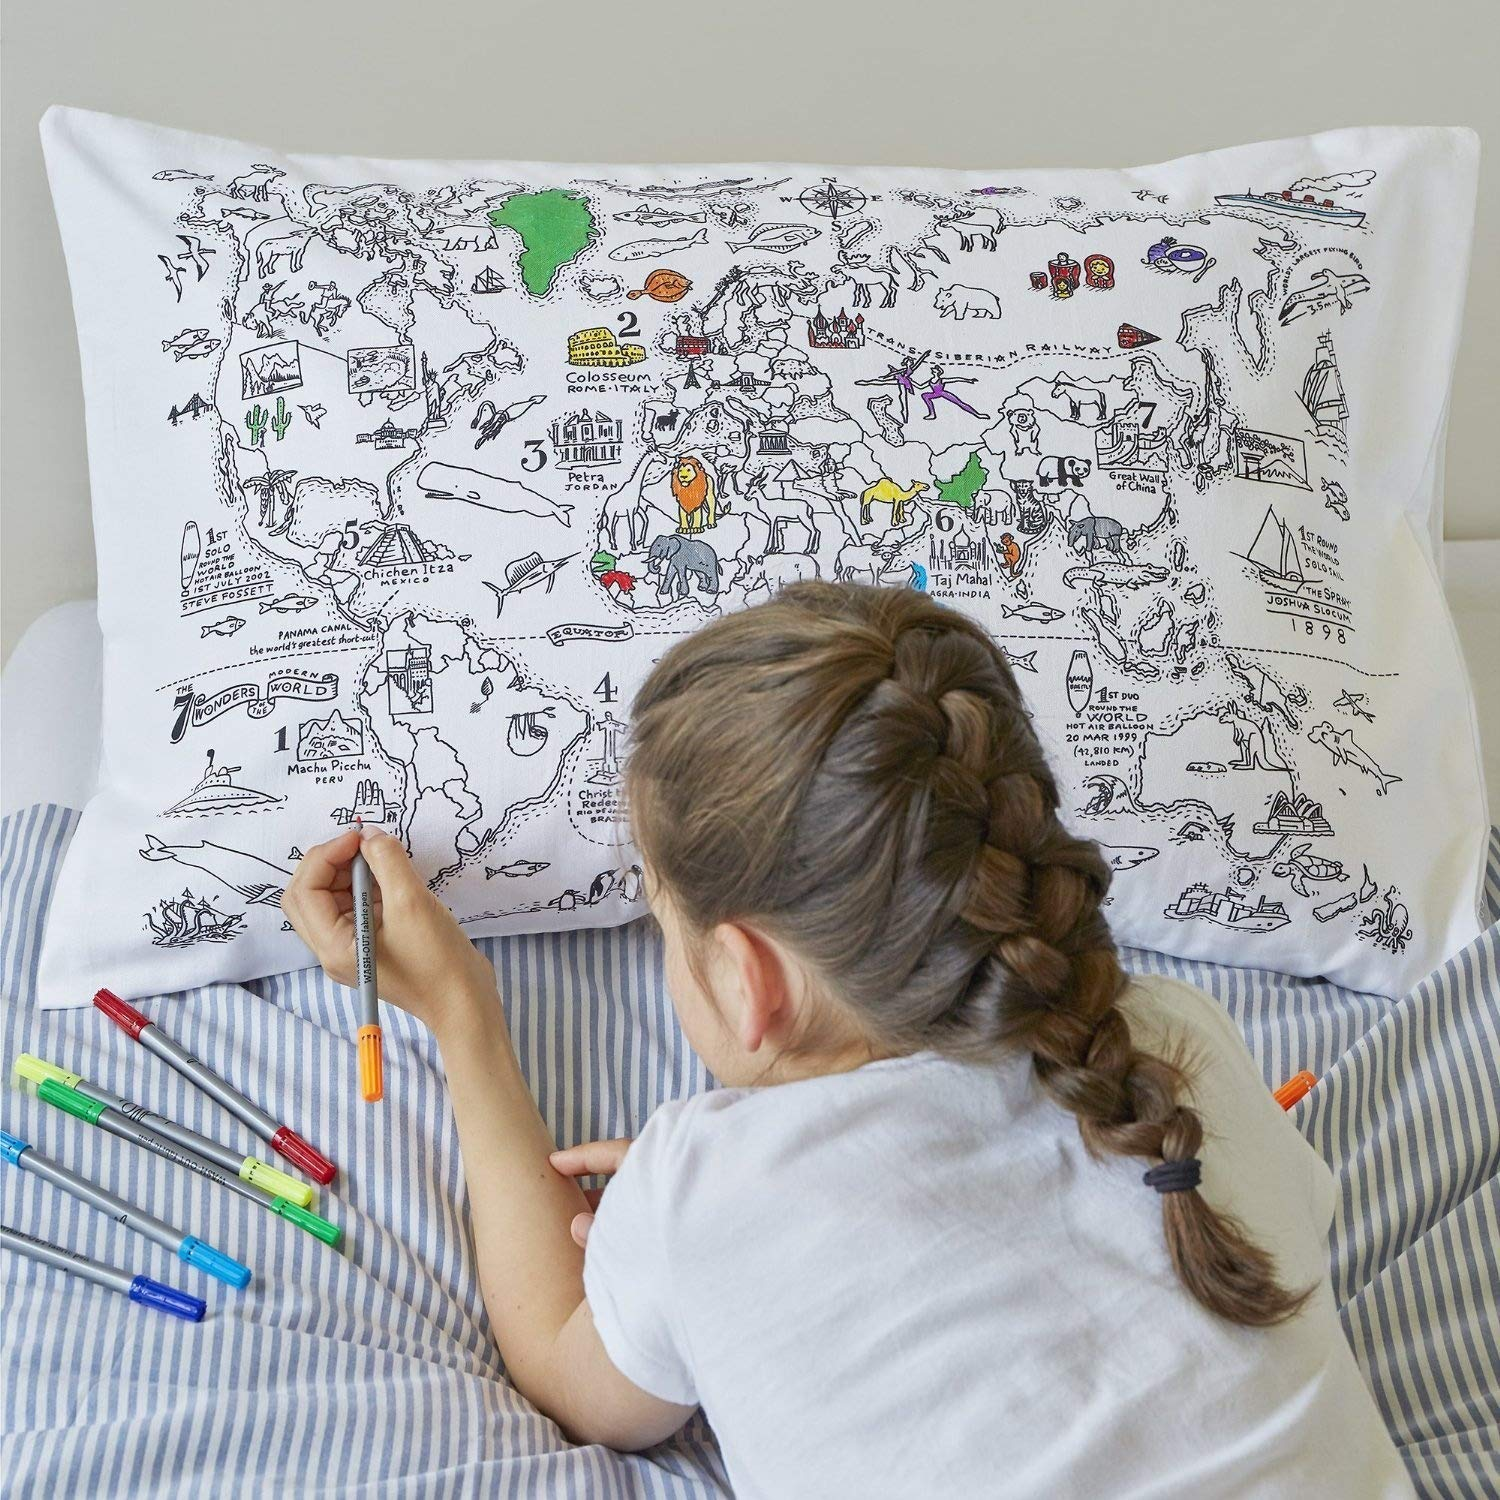 Doodle World Map Pillowcase, Color Your Own Pillow Case, Coloring Pillowcase with 10 Washable Fabric Markers by eatsleepdoodle